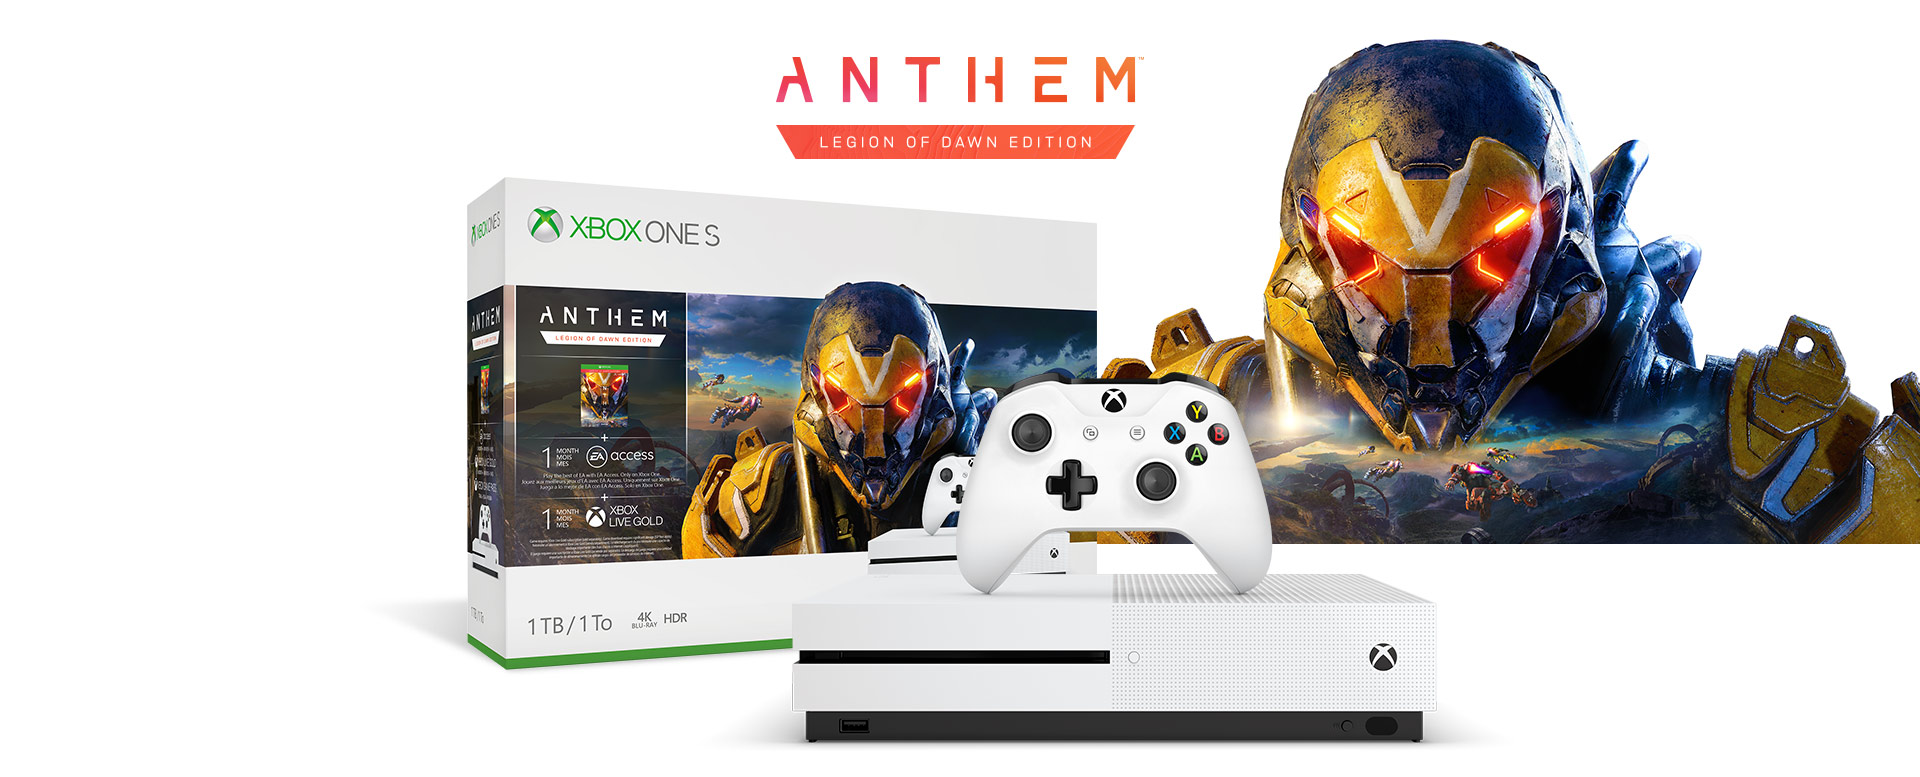 Anthem Legion of Dawn Edition, Xbox One S-Konsole mit Hardware-Bundle-Verpackung mit Game Art von Anthem